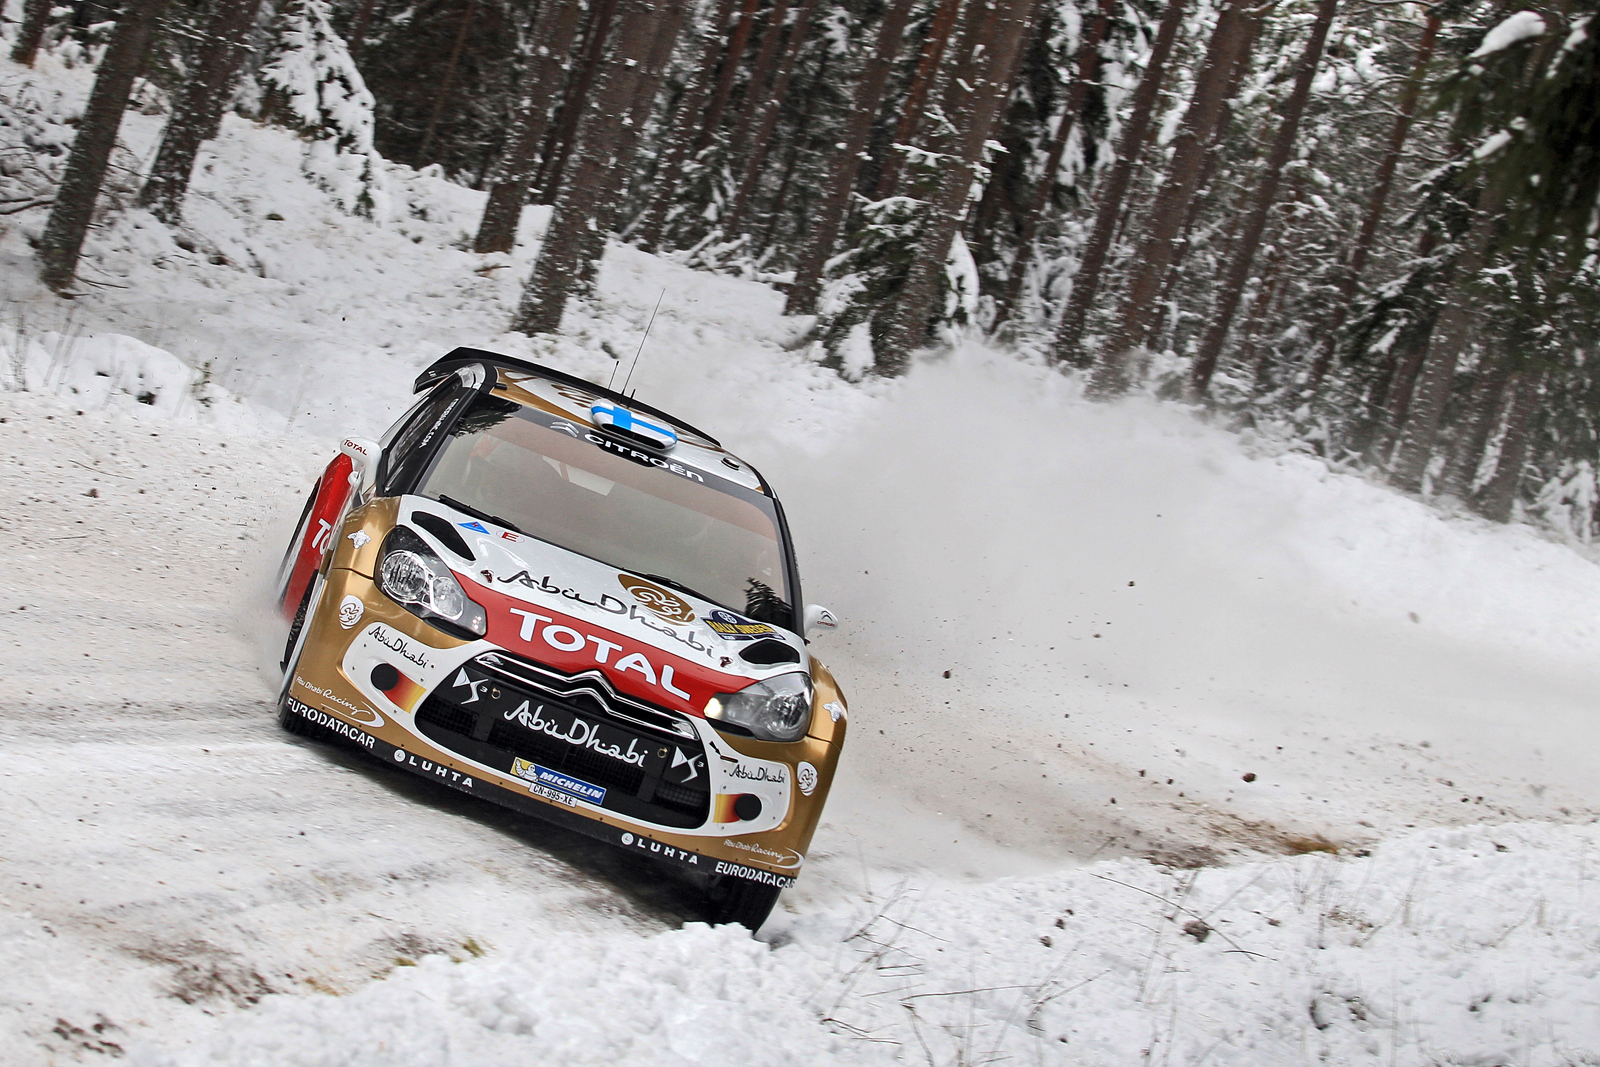 WORLD RALLY CHAMPIONSHIP 2013 - RALLYE SWEDEN